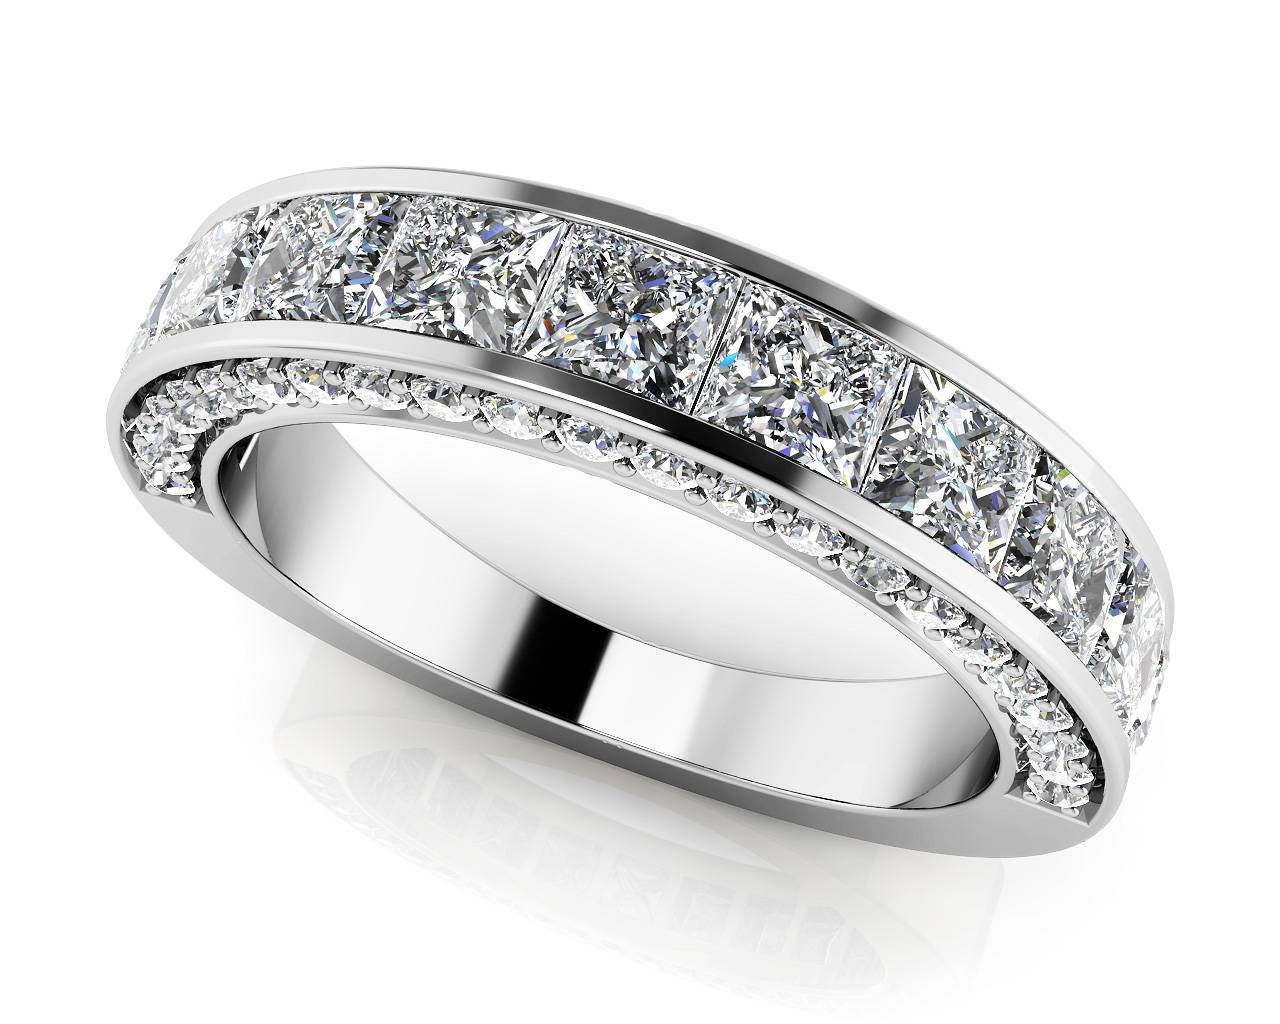 Design Your Own Diamond Anniversary Ring & Eternity Ring With Regard To Most Up To Date Diamonds Wedding Anniversary Rings (View 11 of 25)